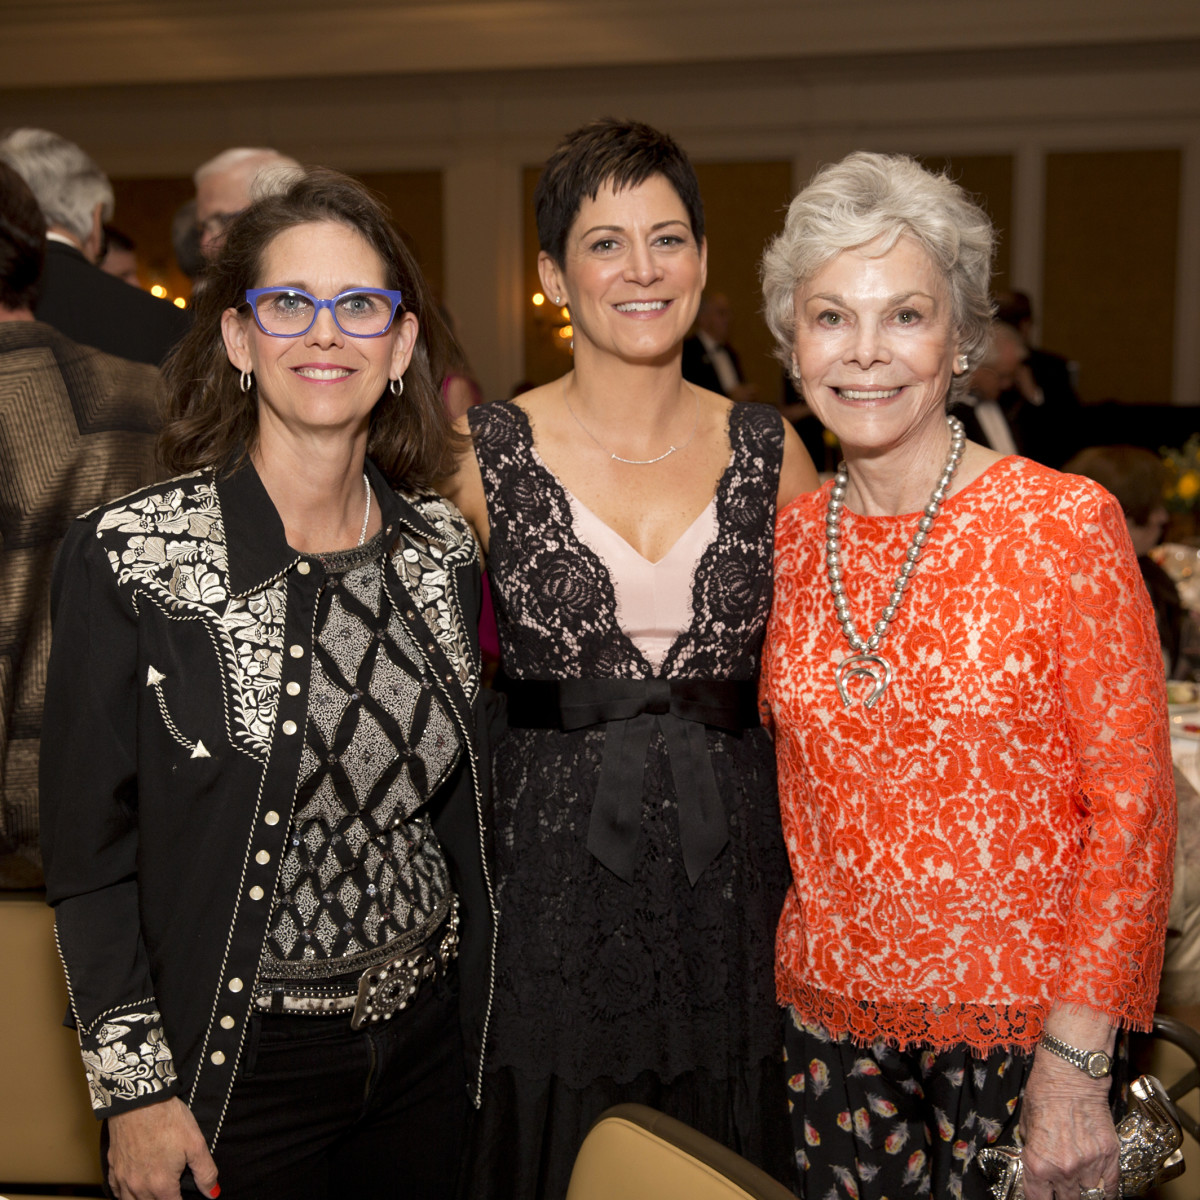 Houston, Blue Bird Circle Gala with Lyle Lovett, April 2017, Elizabeth DeLuca, Colleen O'Brien, Janice McNair